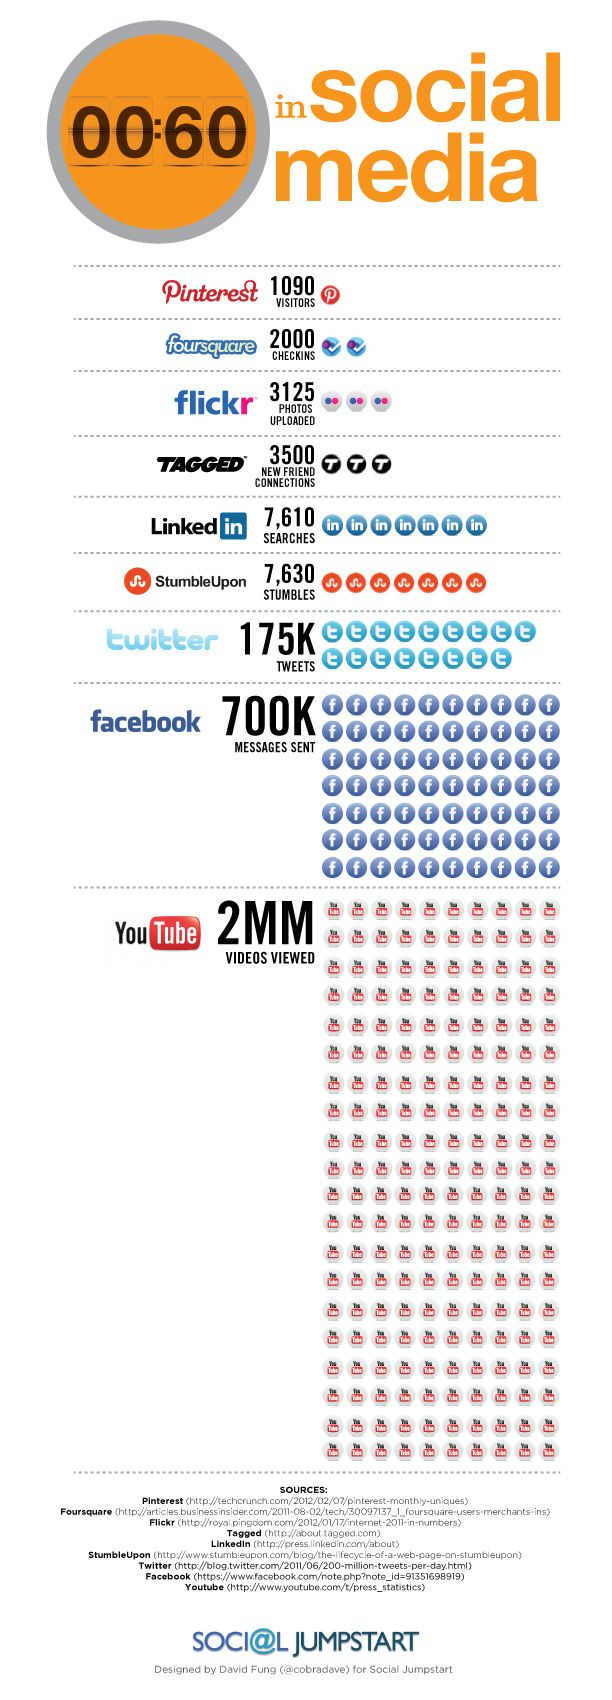 #Infographic Every 60 Seconds in Social Media